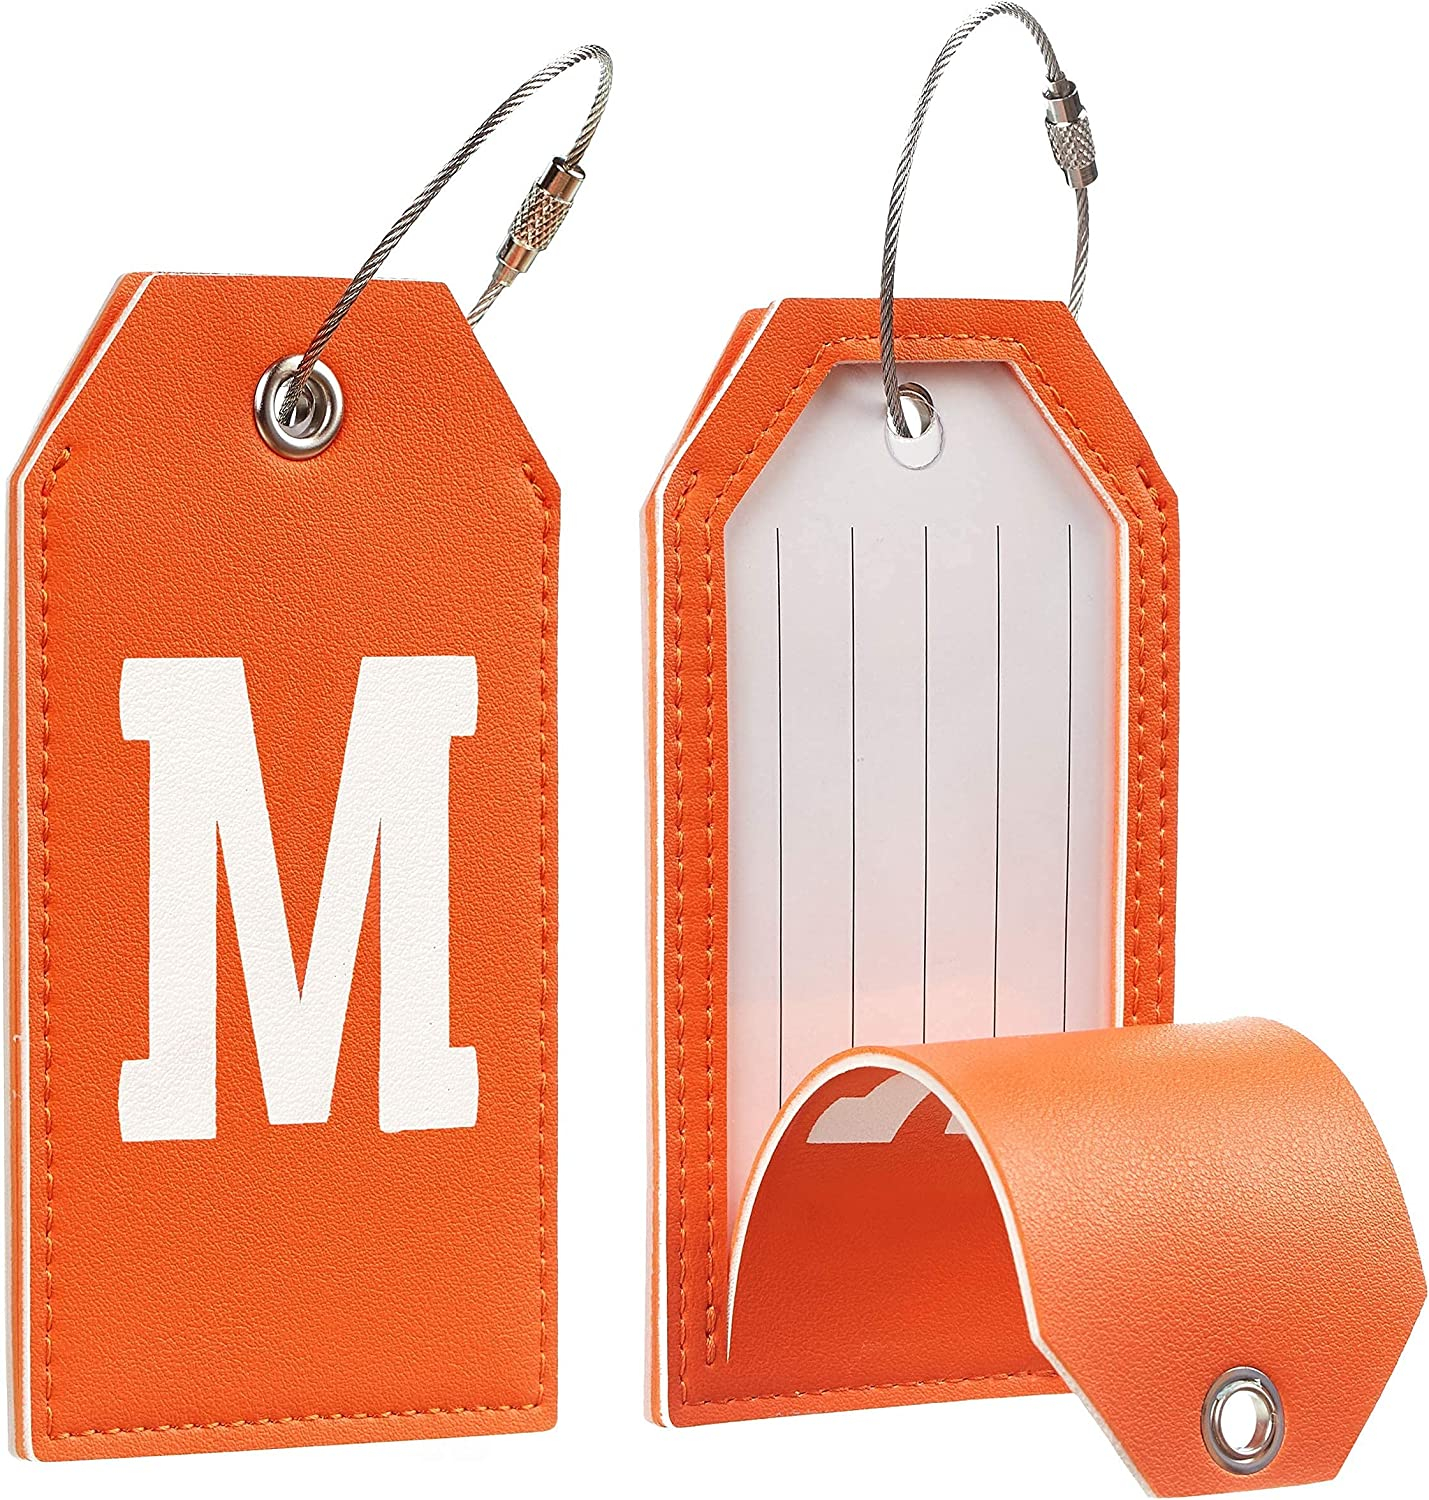 Toughergun Initial Letter Luggage Tag with Leather Full Privacy Free shipping cheap New